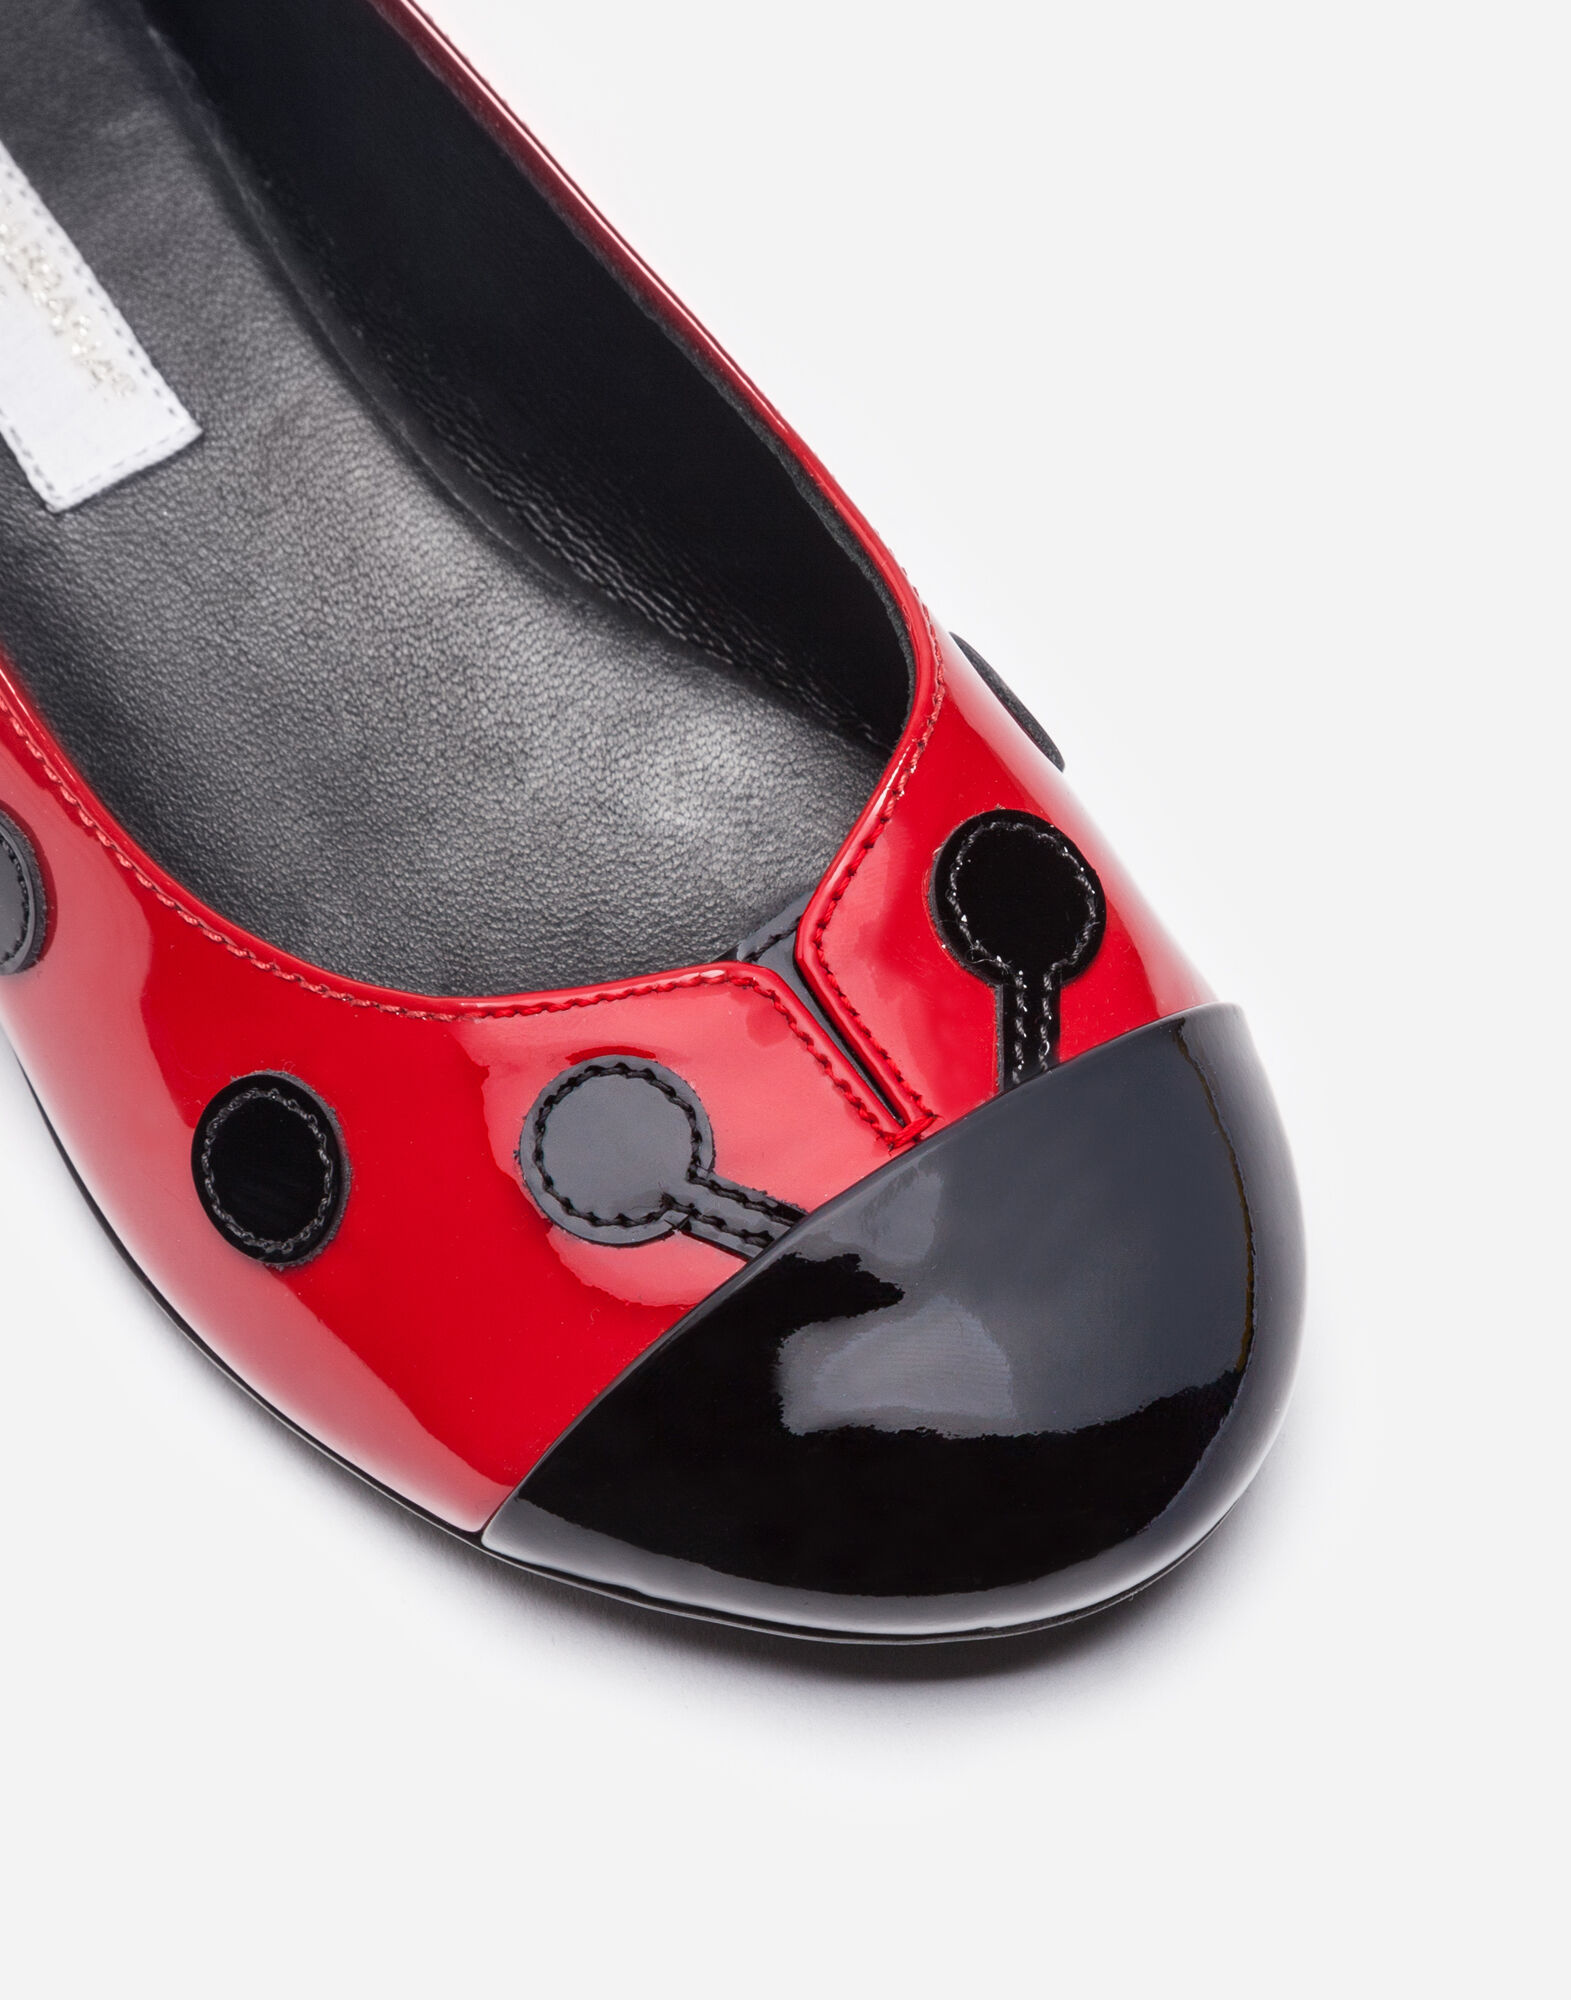 PATENT LEATHER BALLET FLATS WITH PATCH